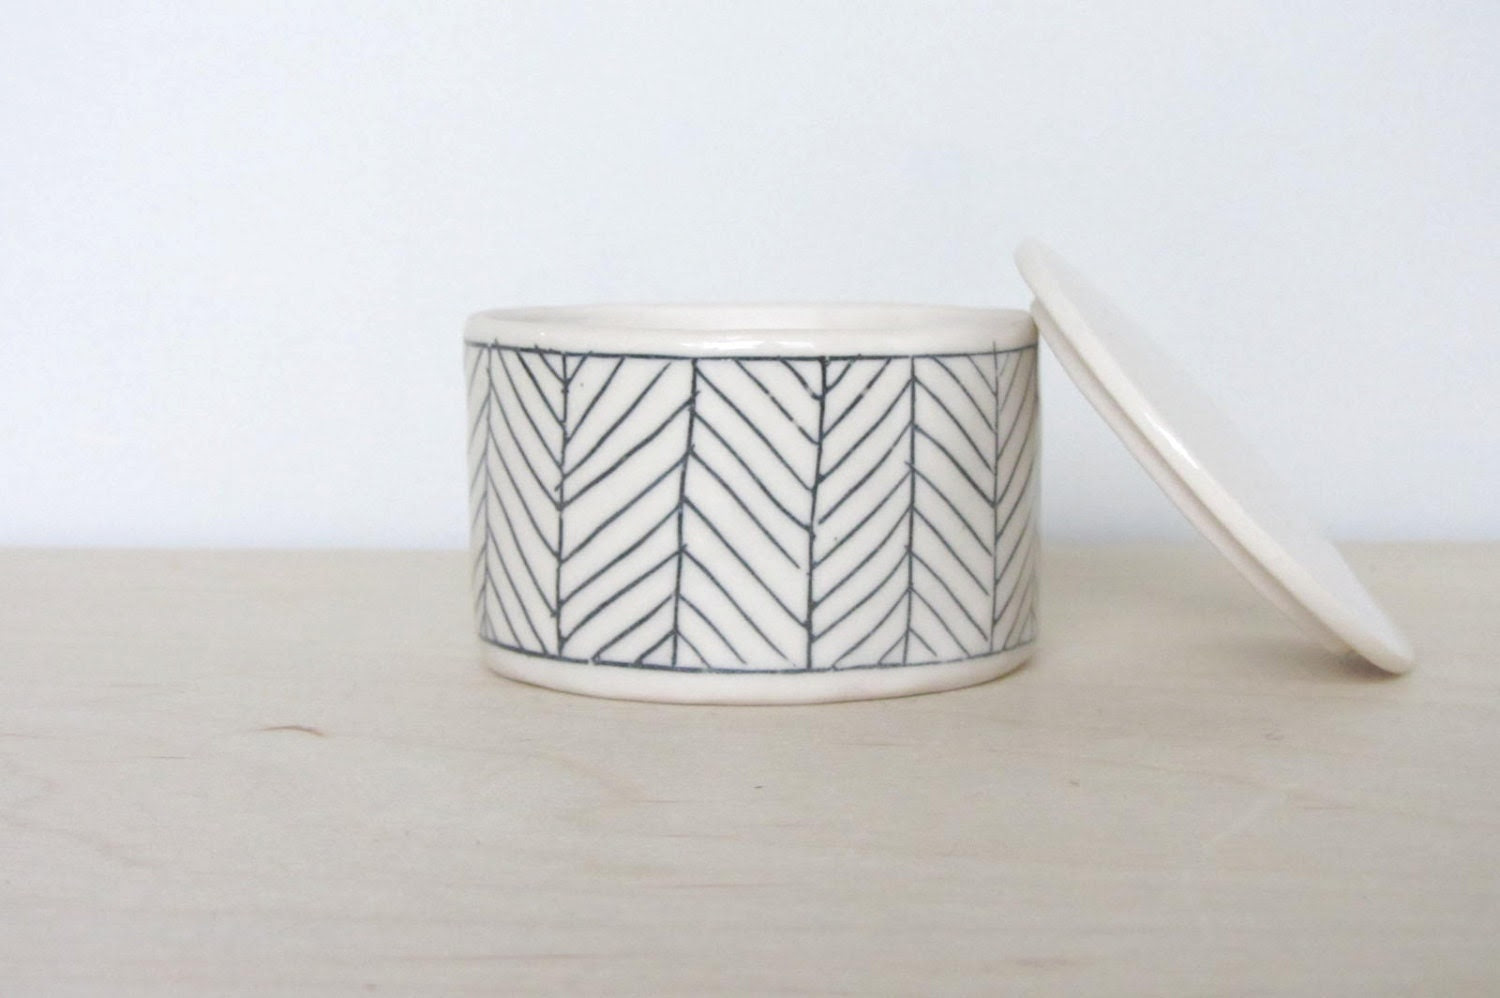 Ceramic Herringbone Salt Cellar in White